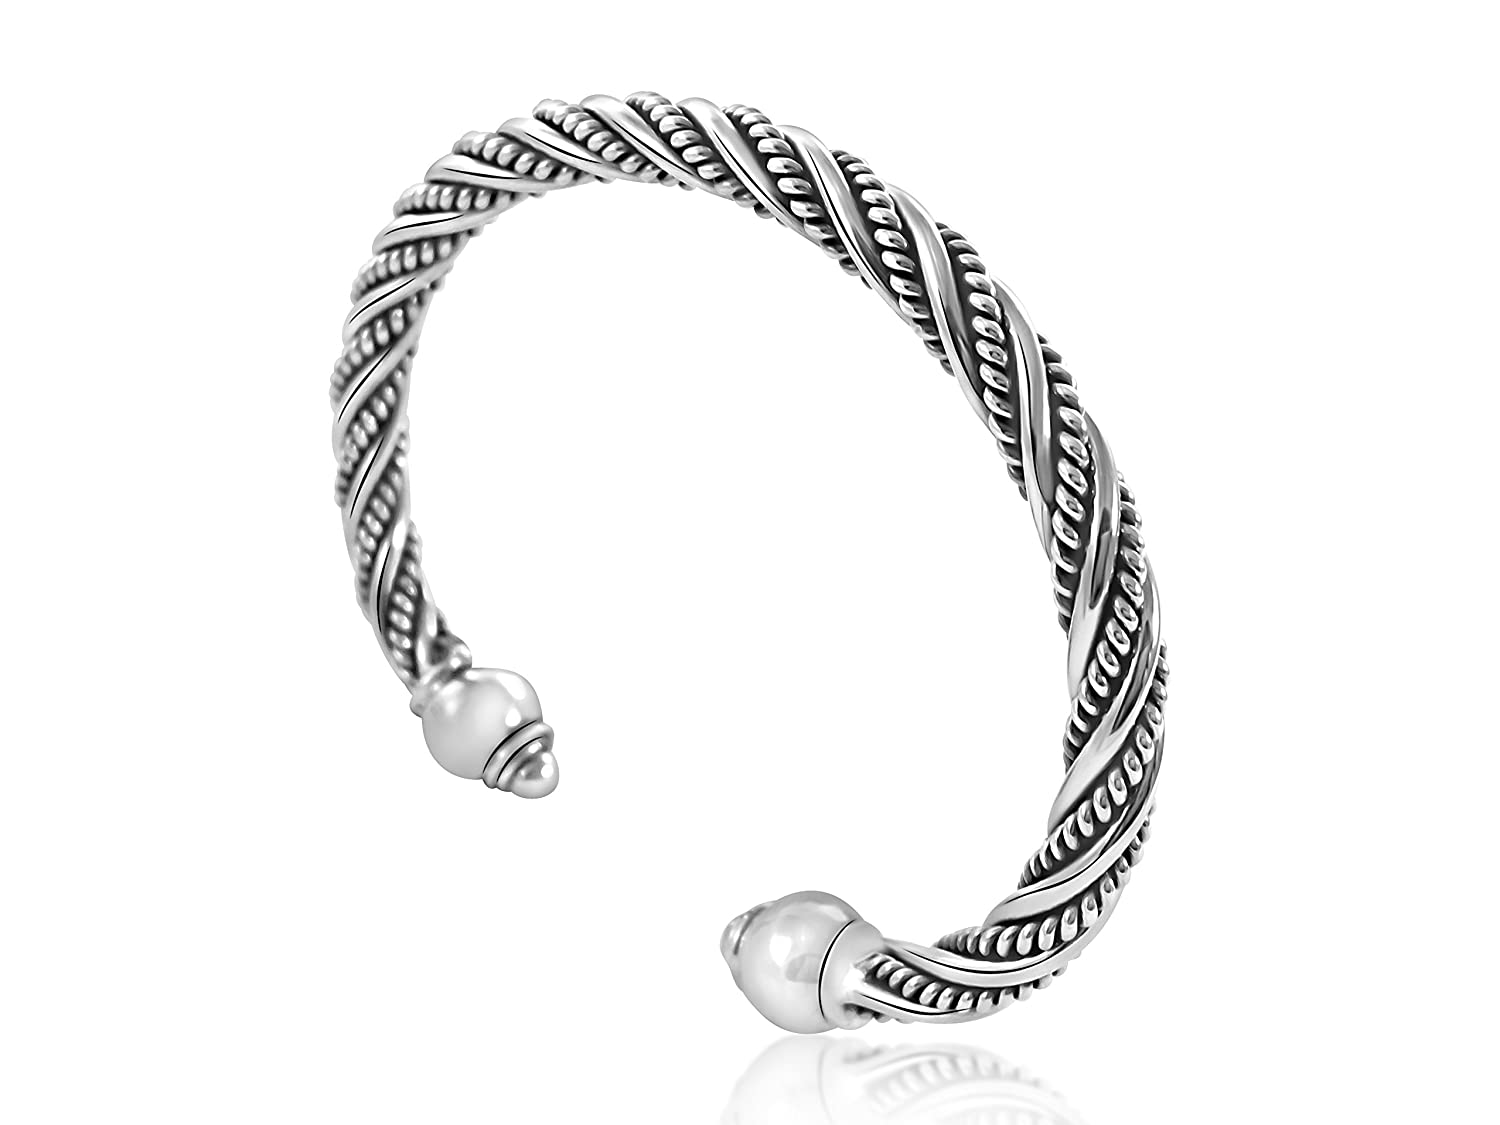 Alfred & Co. Jewellery Sterling Silver Bracelet Bangle Oxidized Torque Style with Bangle Box huv9B7NYEu